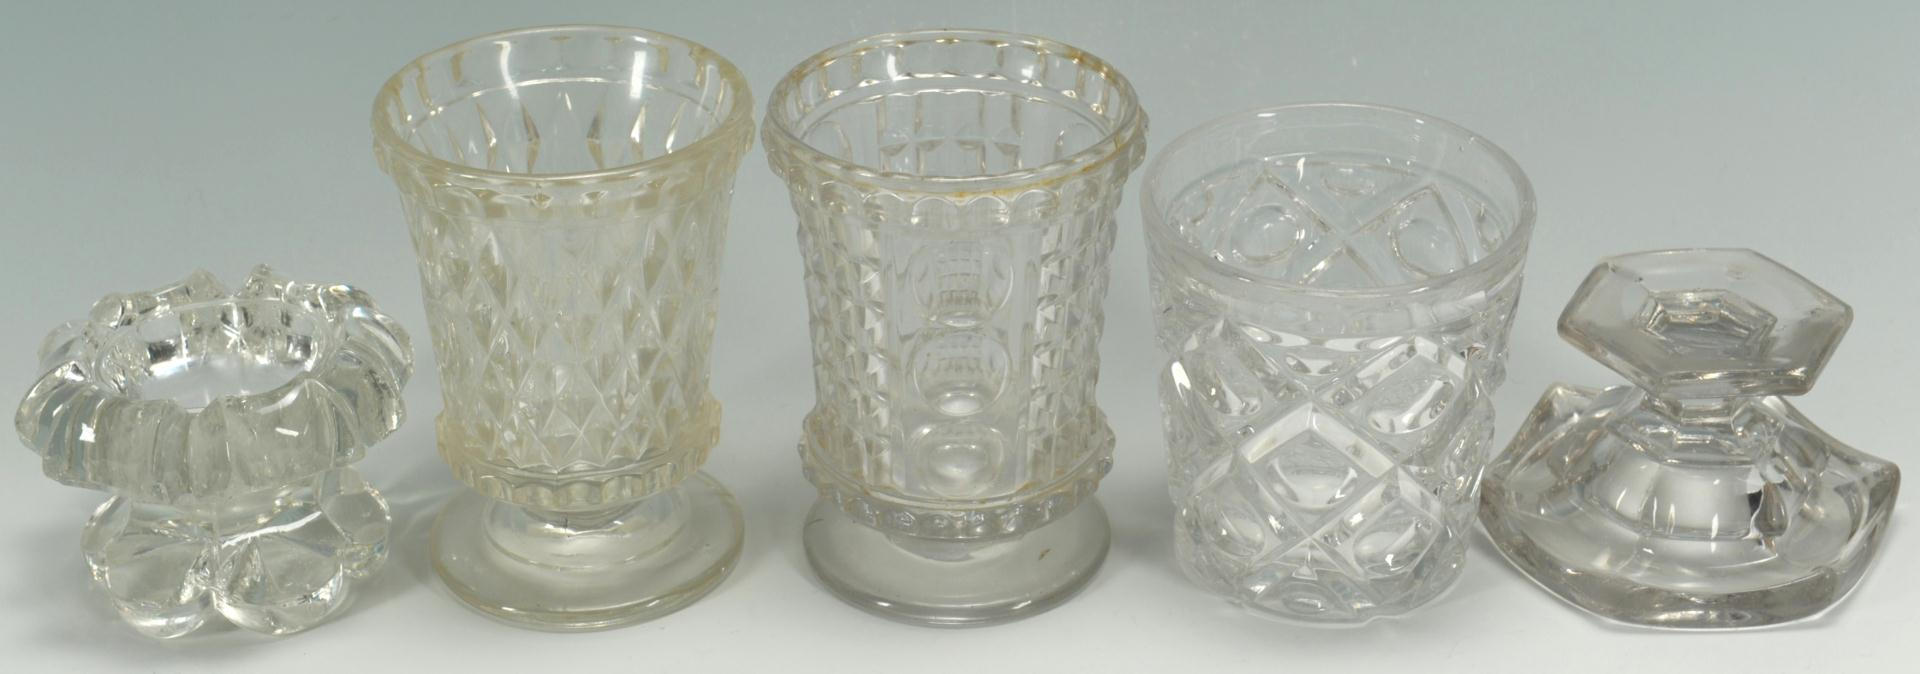 Lot 491: Grouping of Decorative Glass and Flow Blue